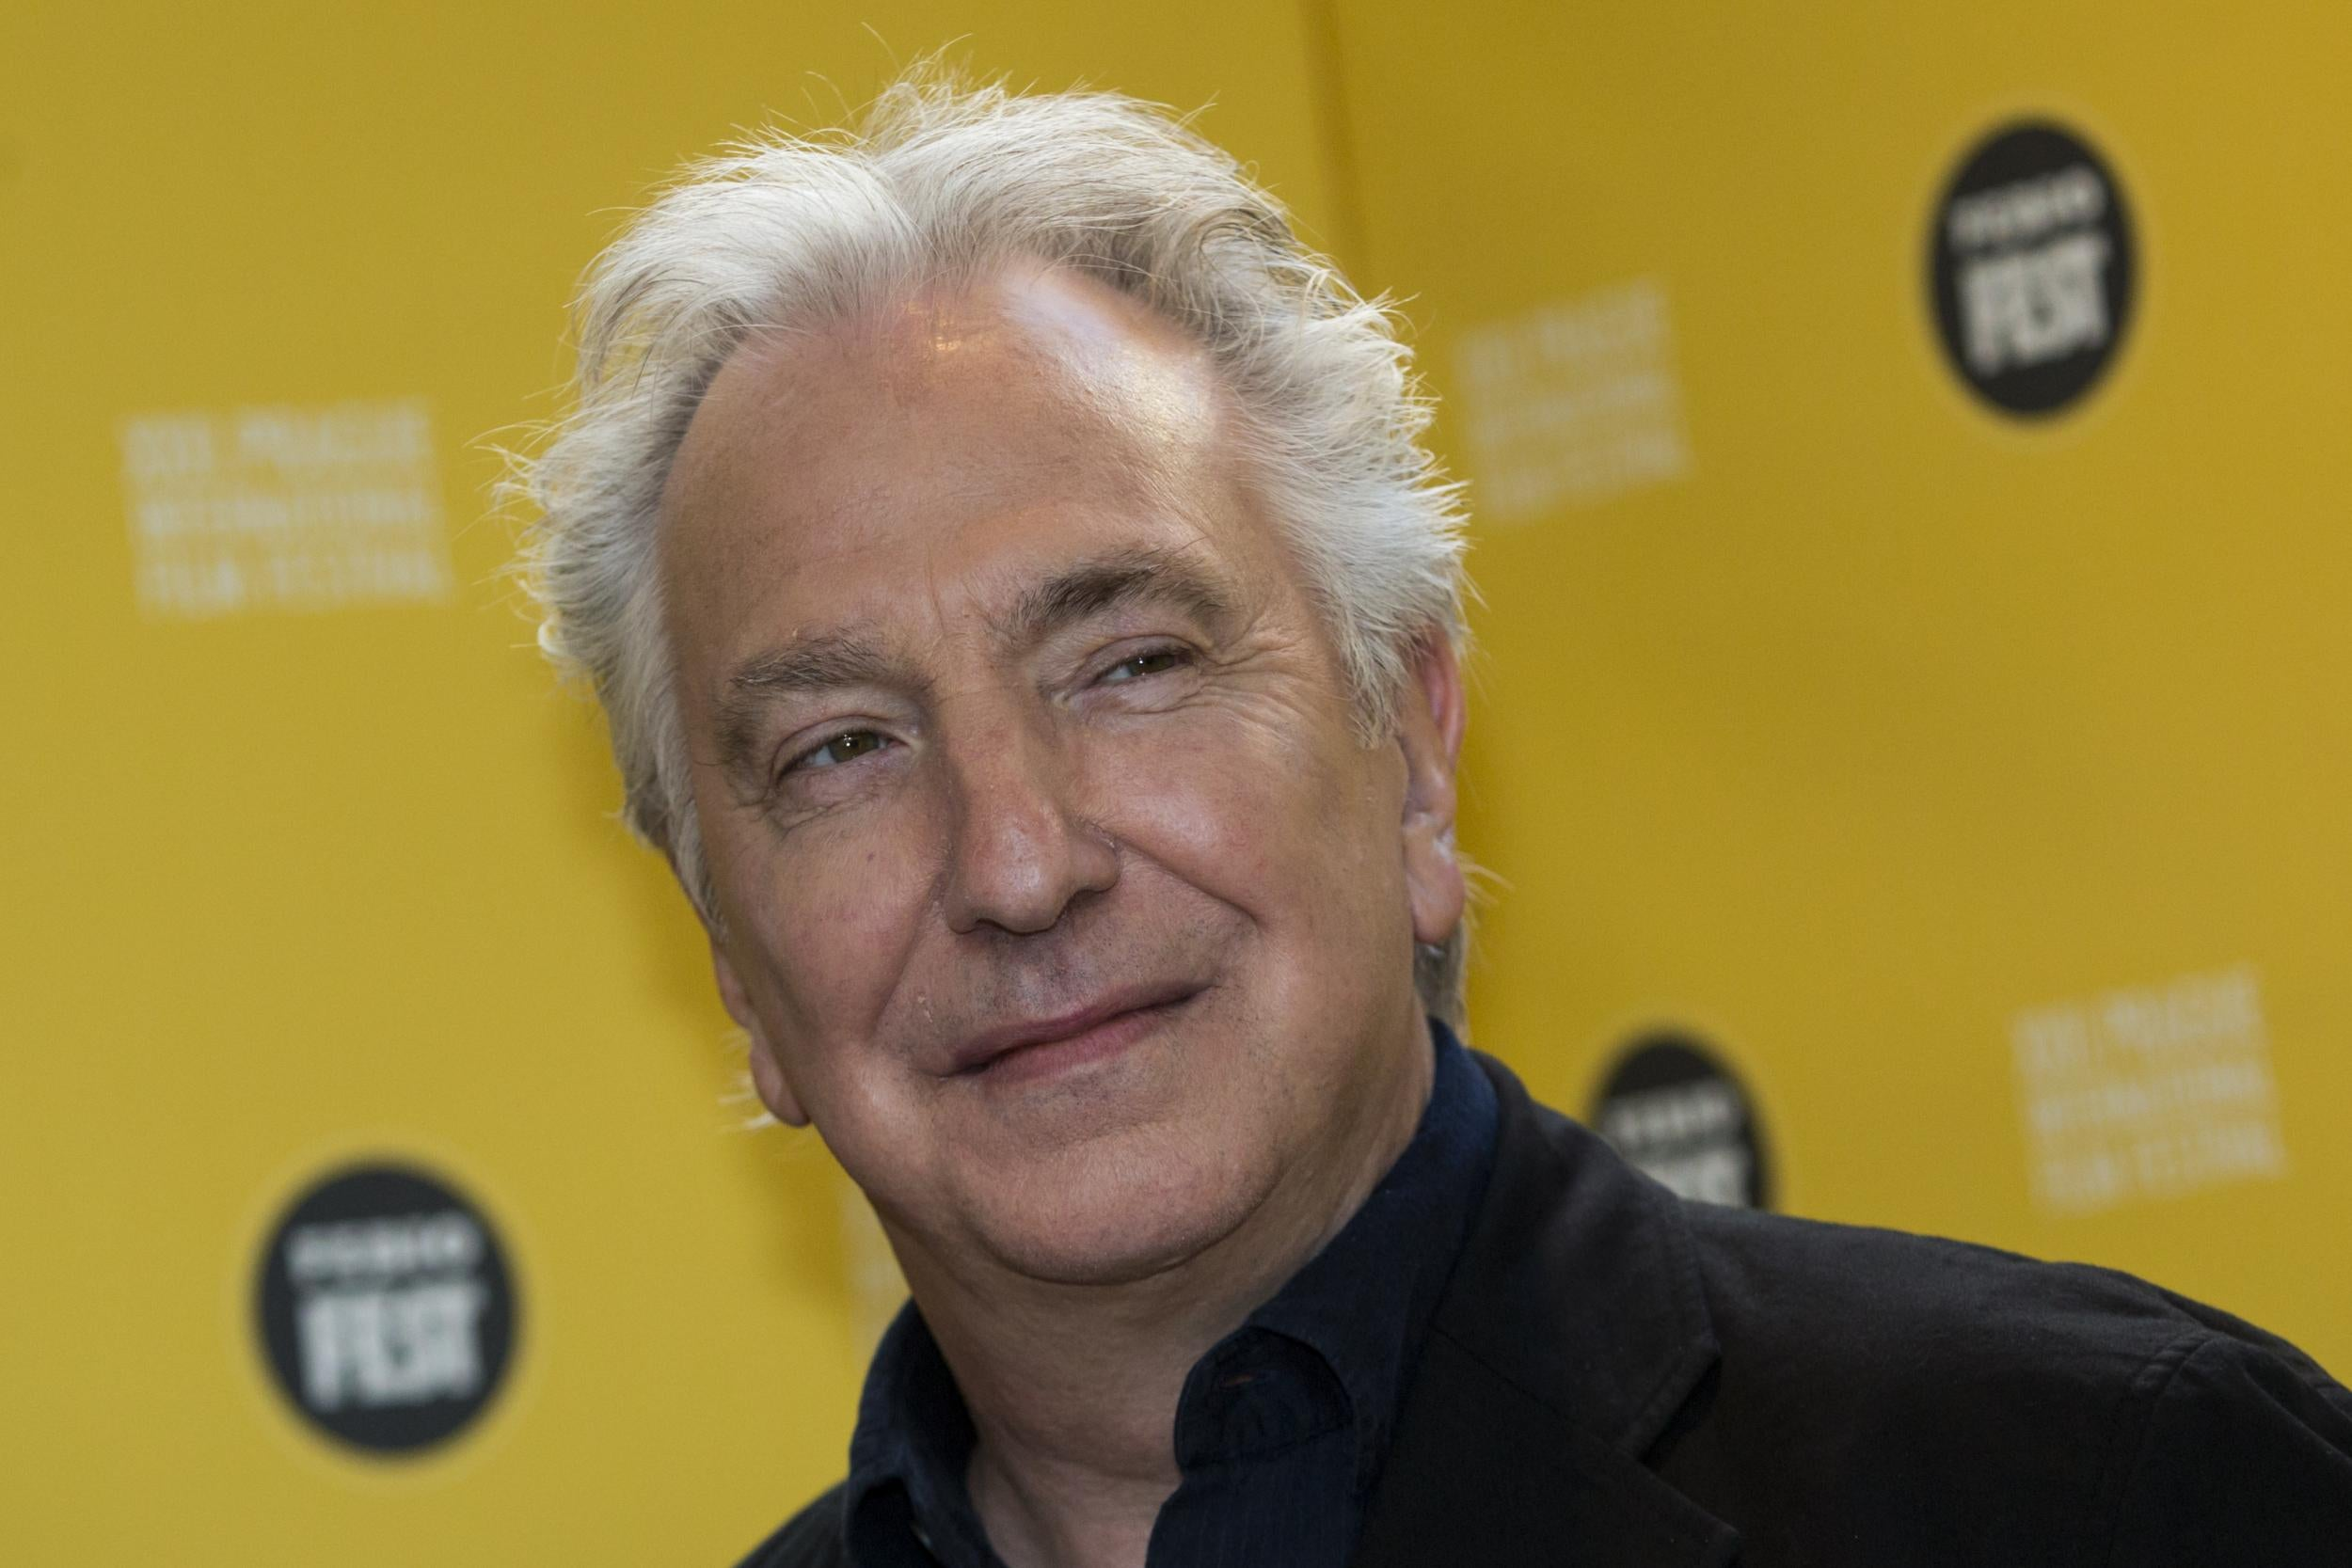 Alan Rickman: the cause of the death of the actor